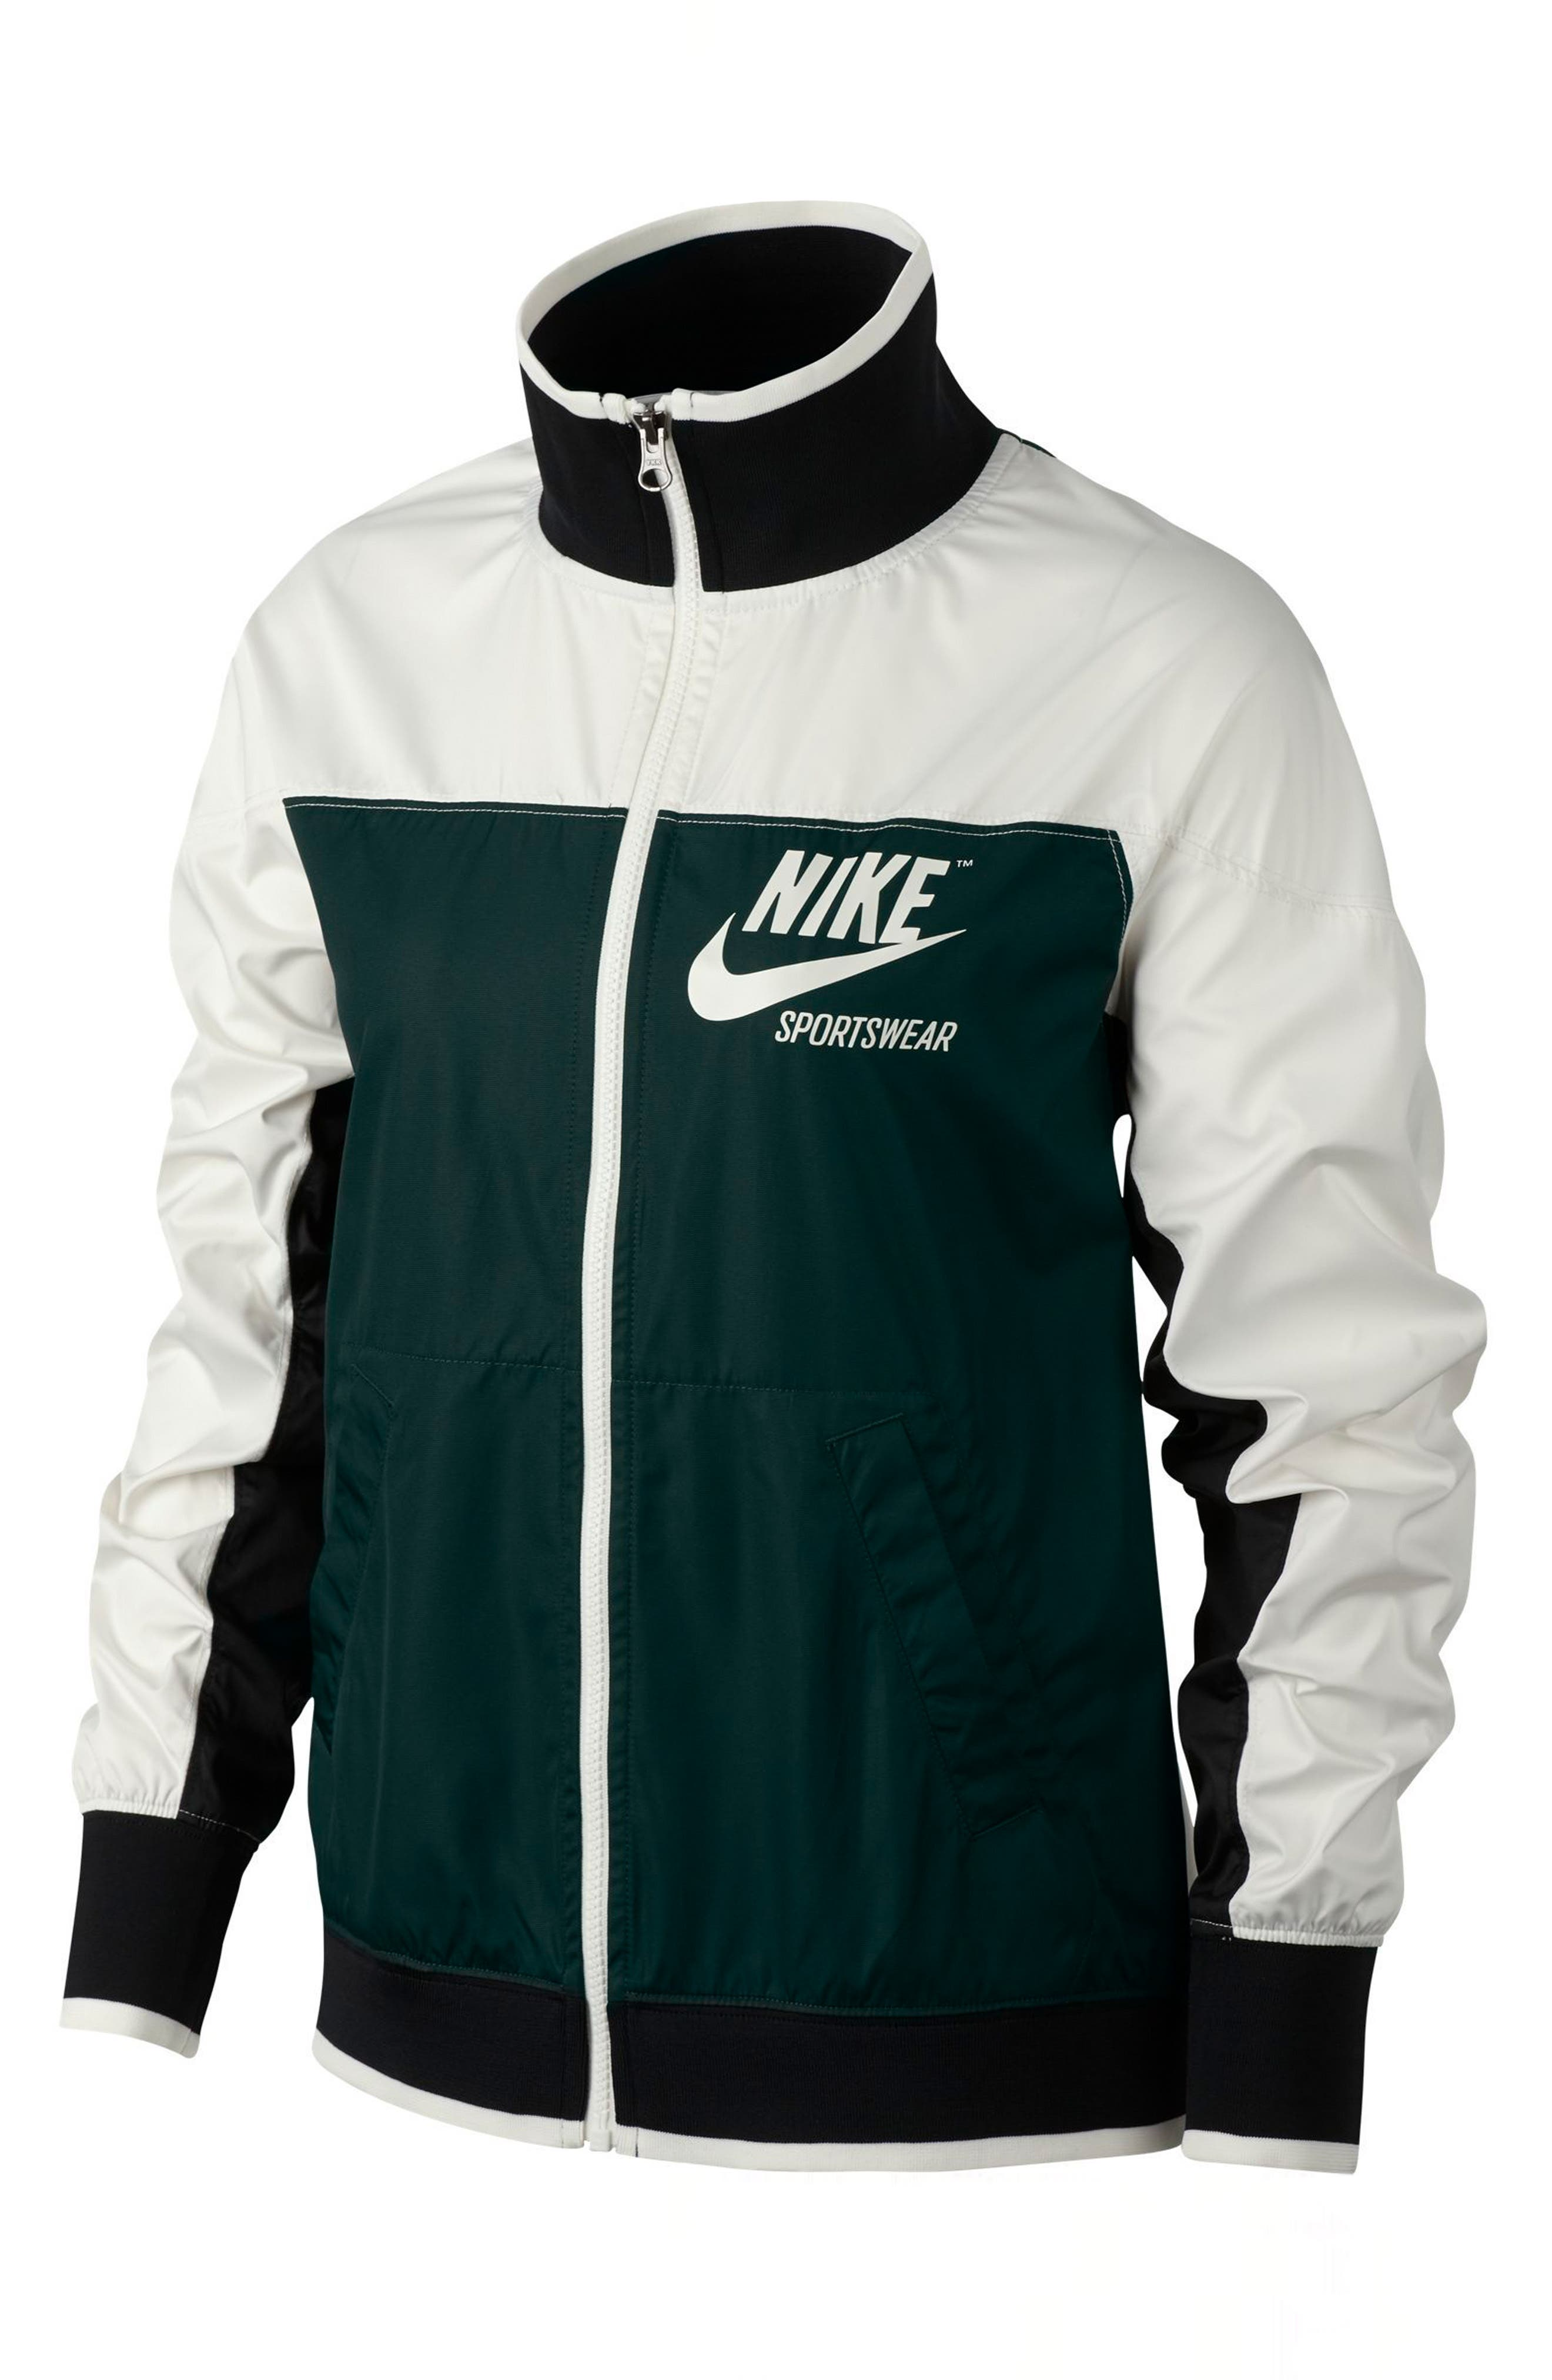 Main Image - Nike Sportswear Women's Full Zip Jacket